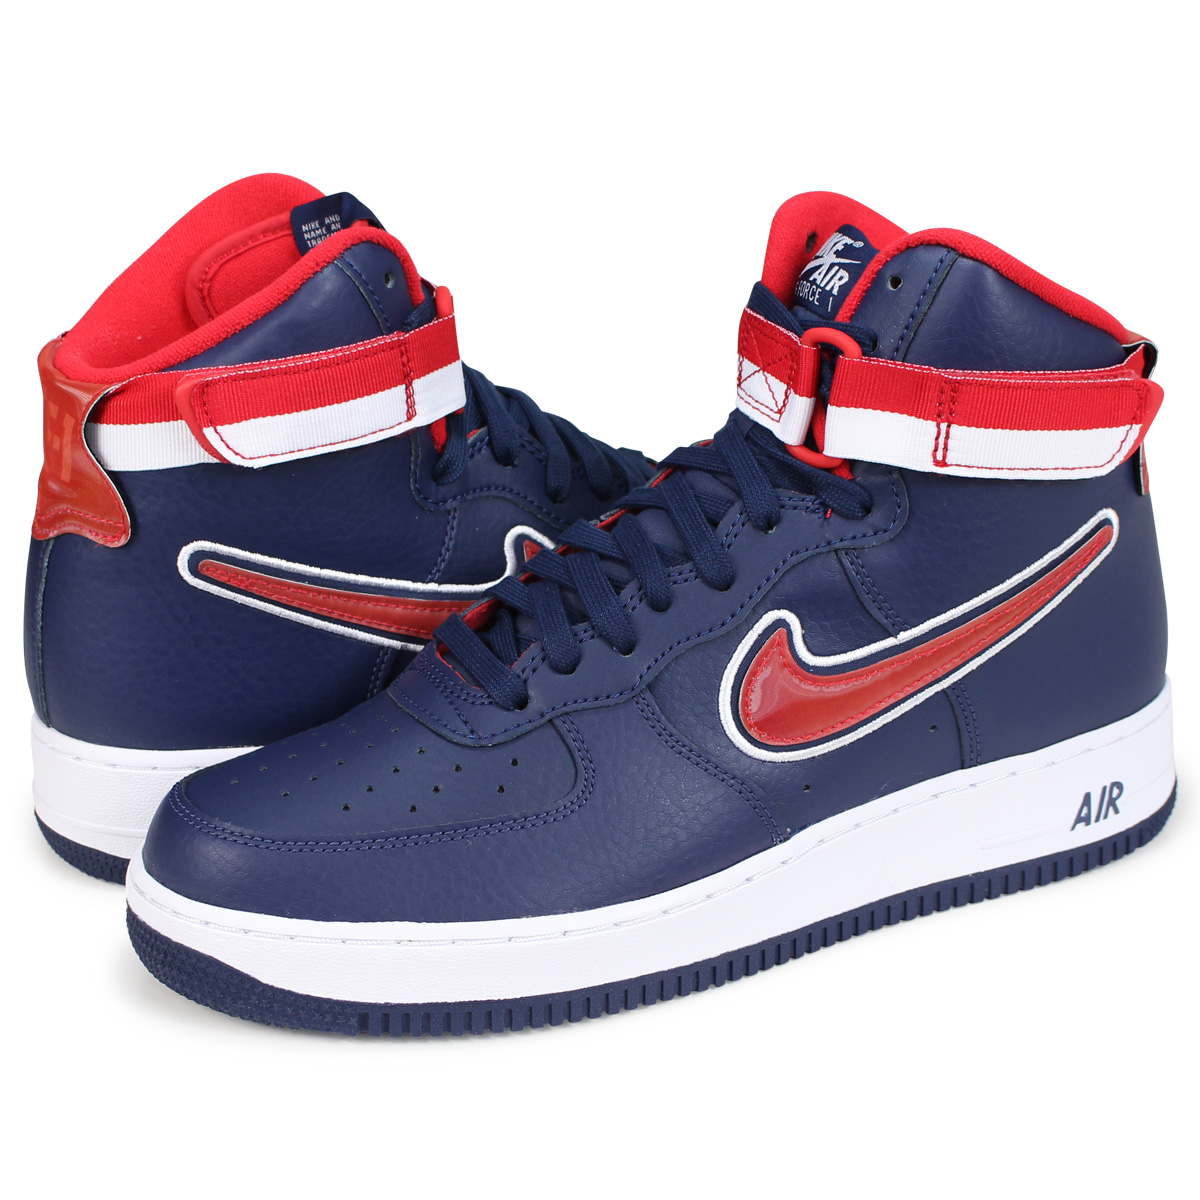 buy popular b13bf 271e2 ... low mist blue midnight b4226 629cd  new zealand nike air force 1 07 lv8  sport nike air force 1 high sneakers men